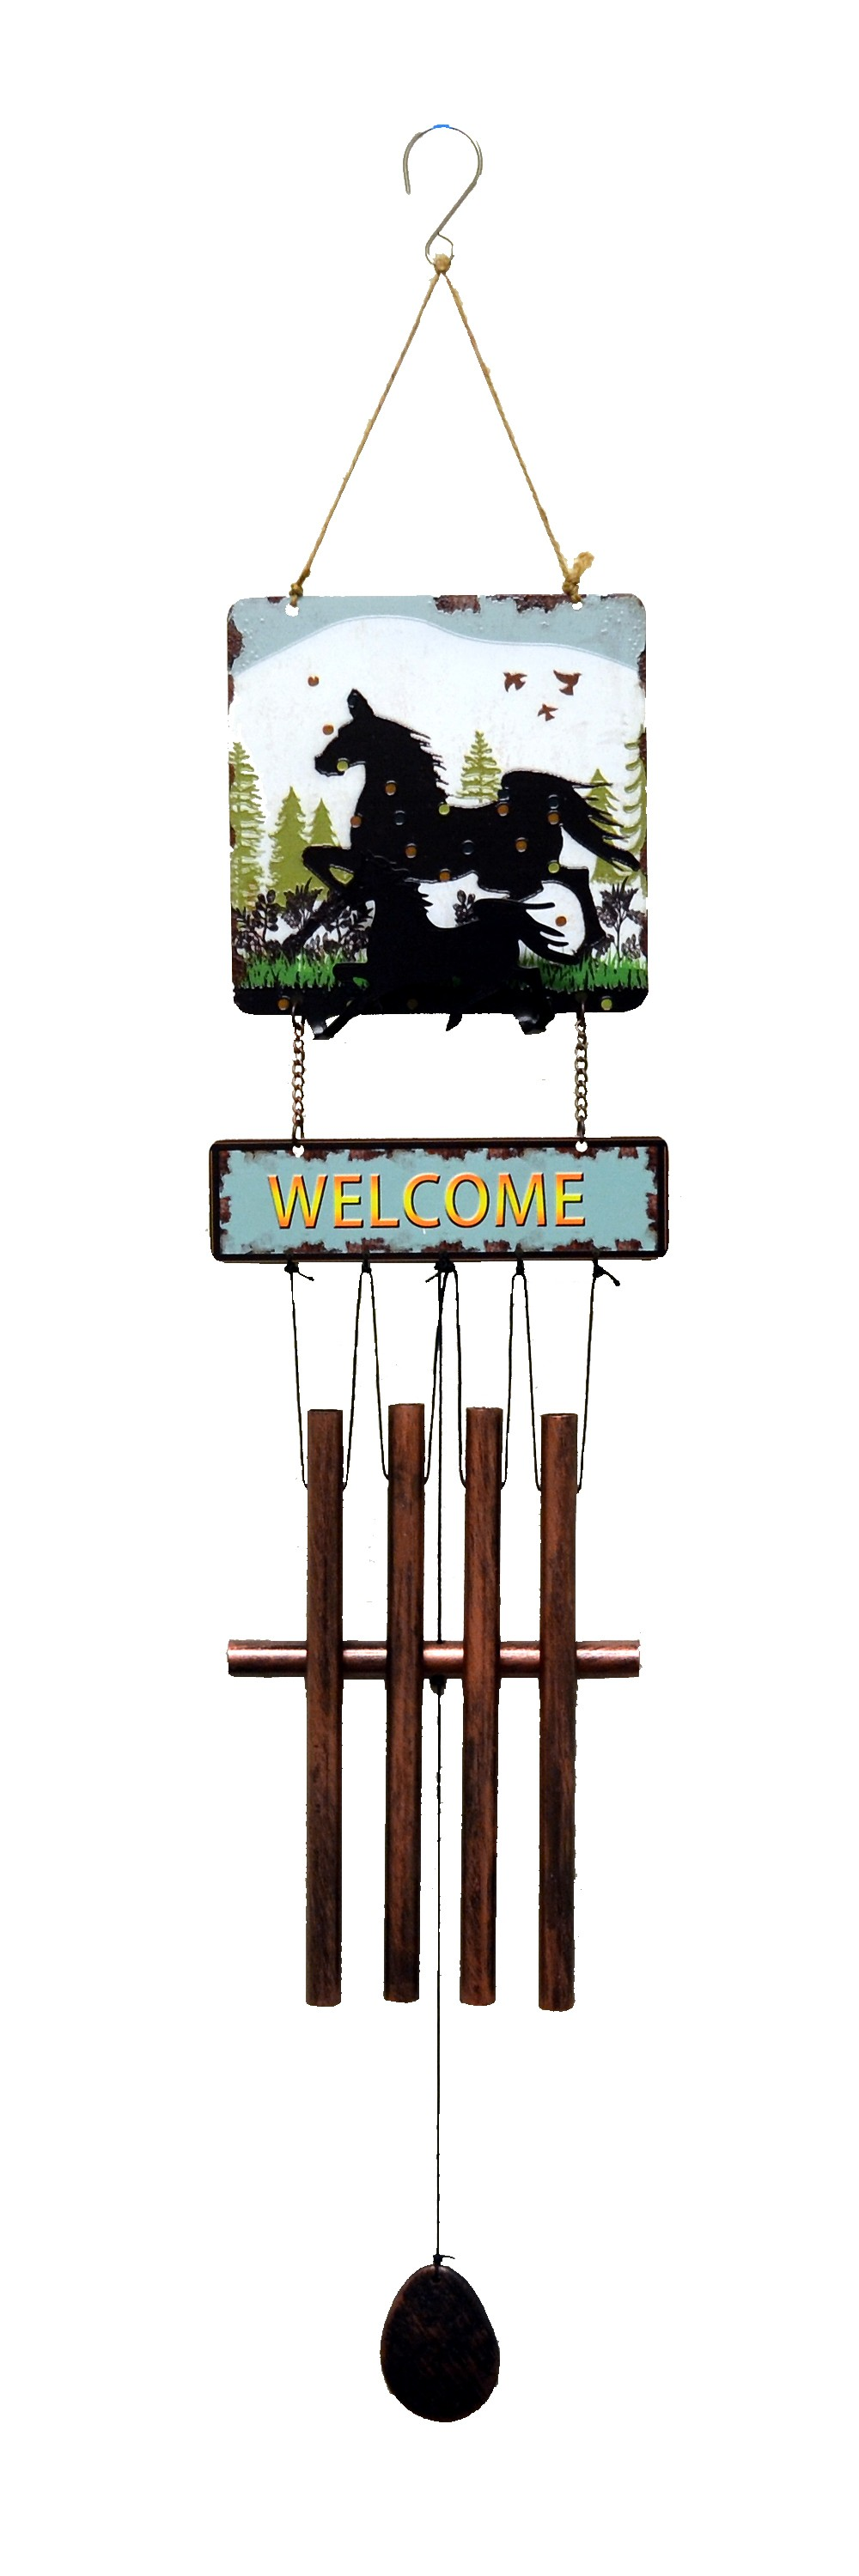 HORSE PRINT SQUARE TOP WIND CHIME